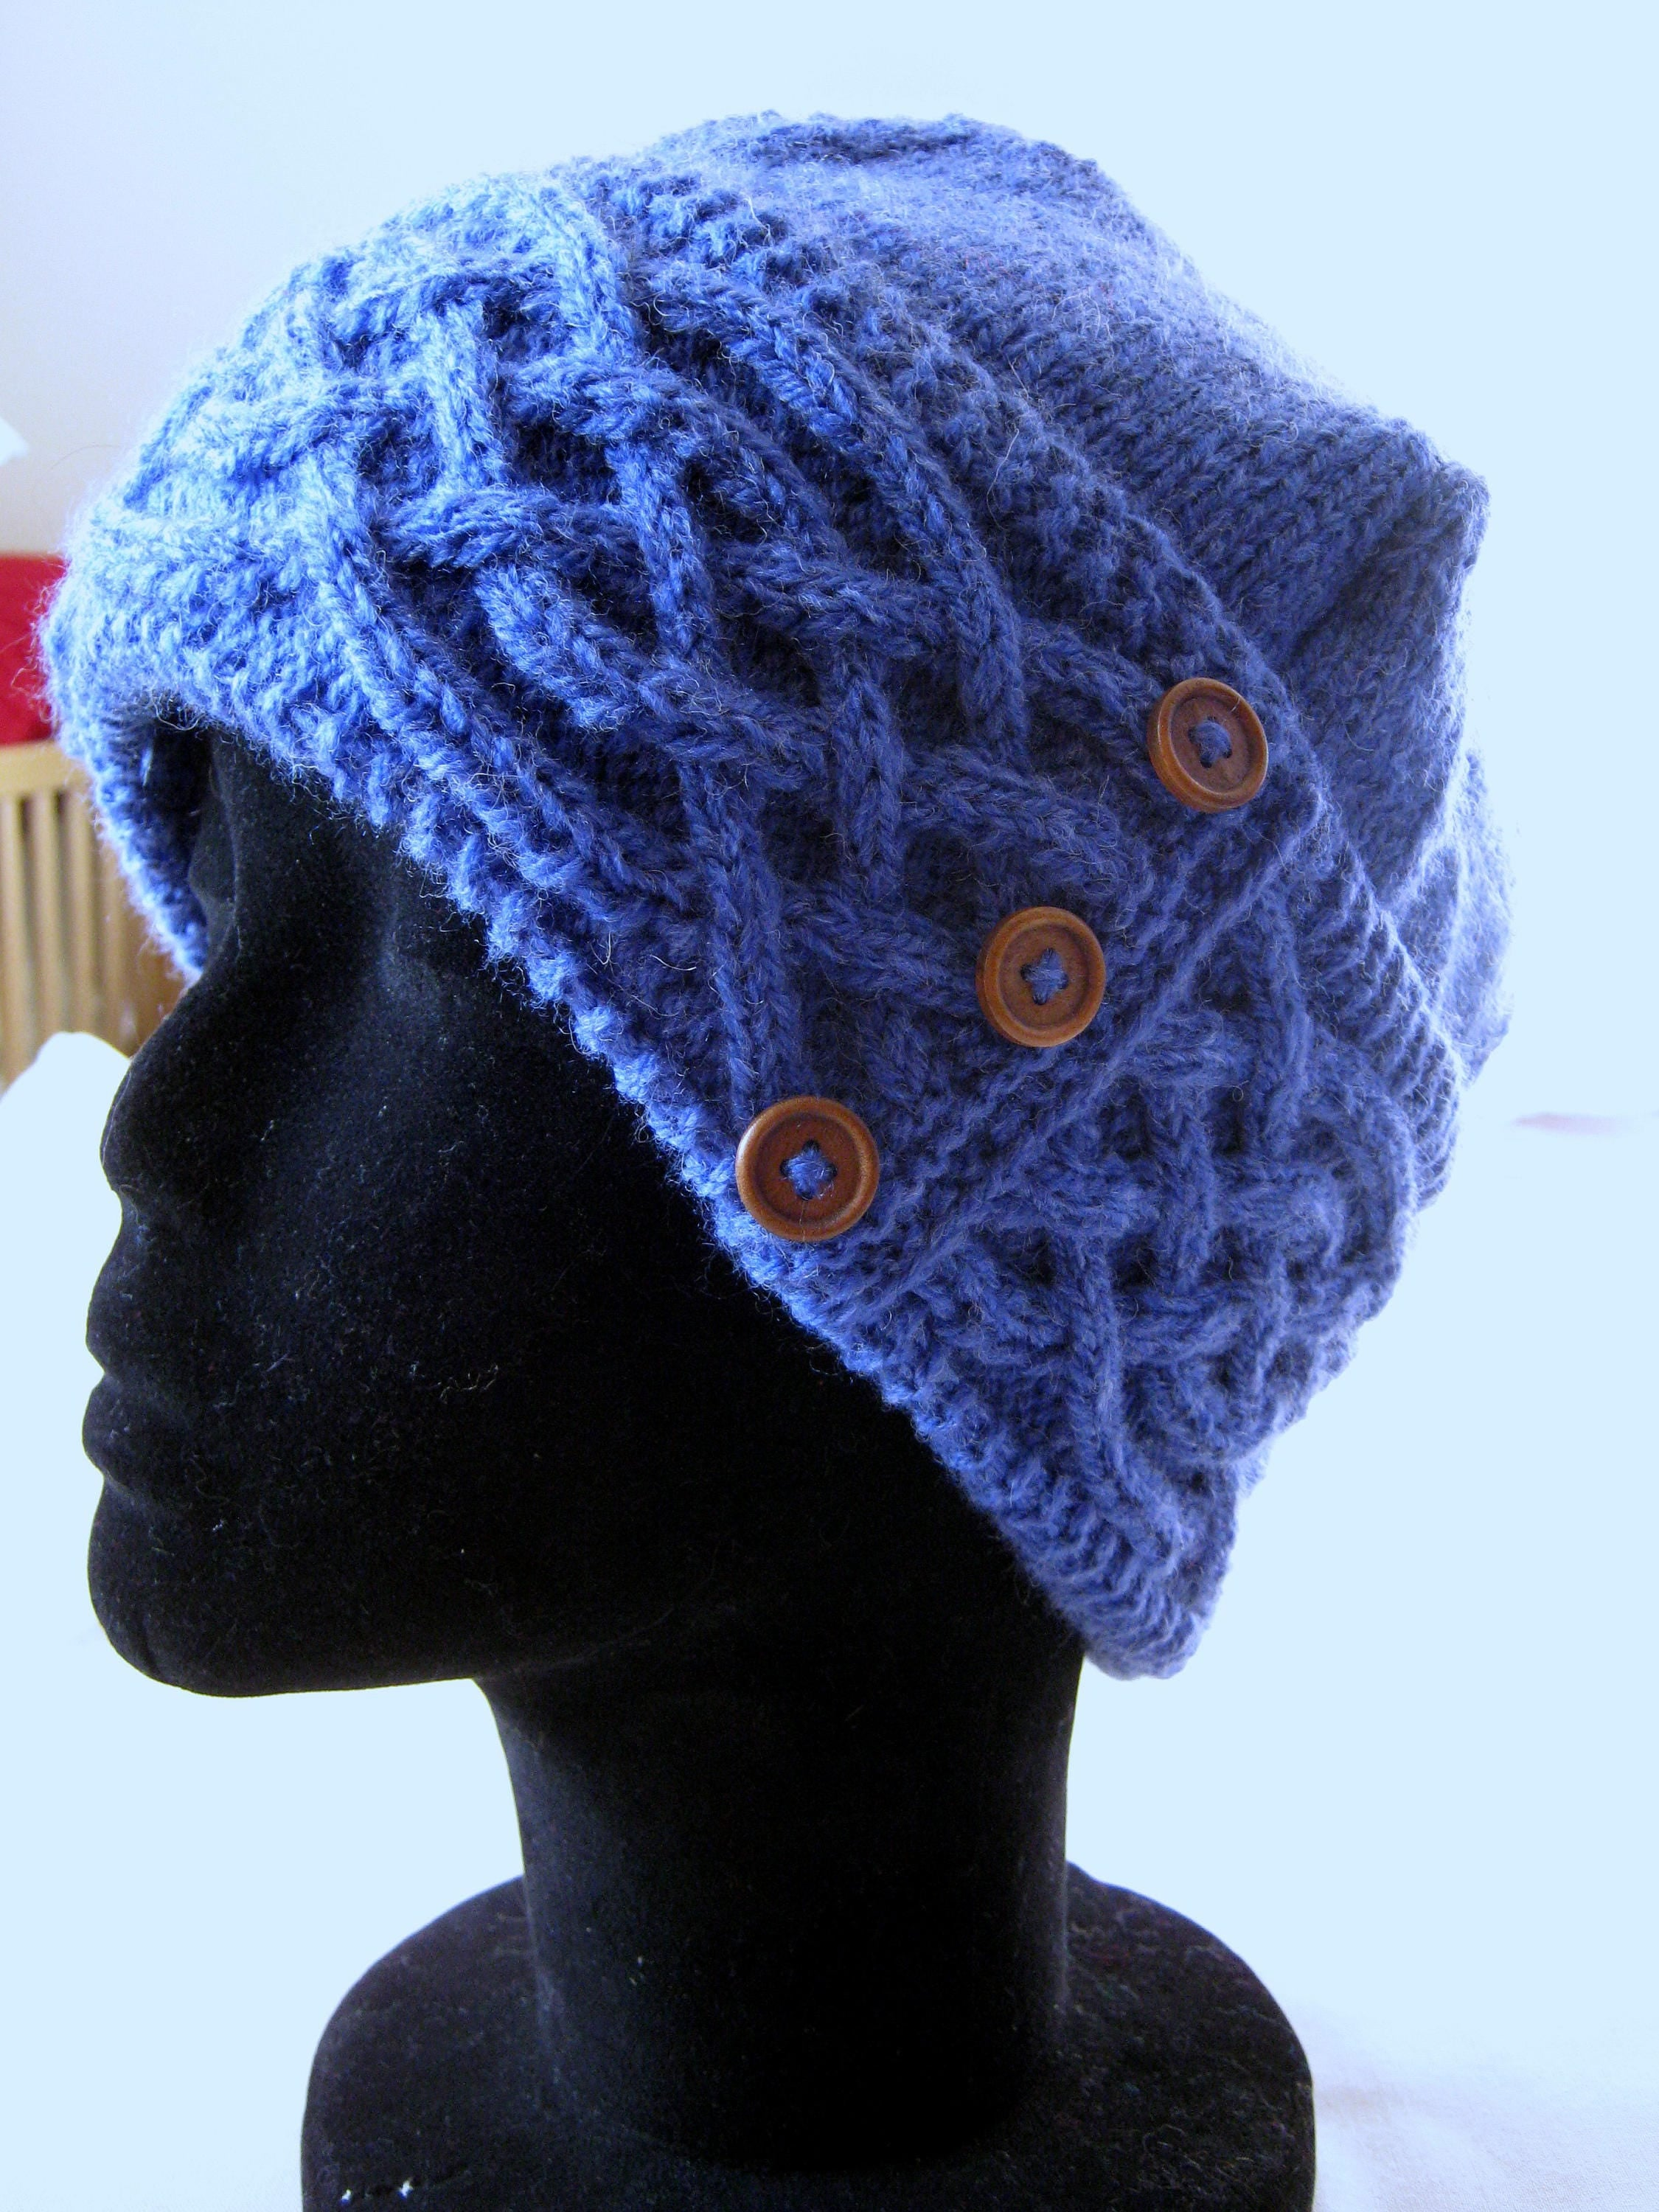 0bf58a457b5 Hand knitted hyacinth blue Saxon Braid pattern Celtic cable hat with wood  button trim - women s